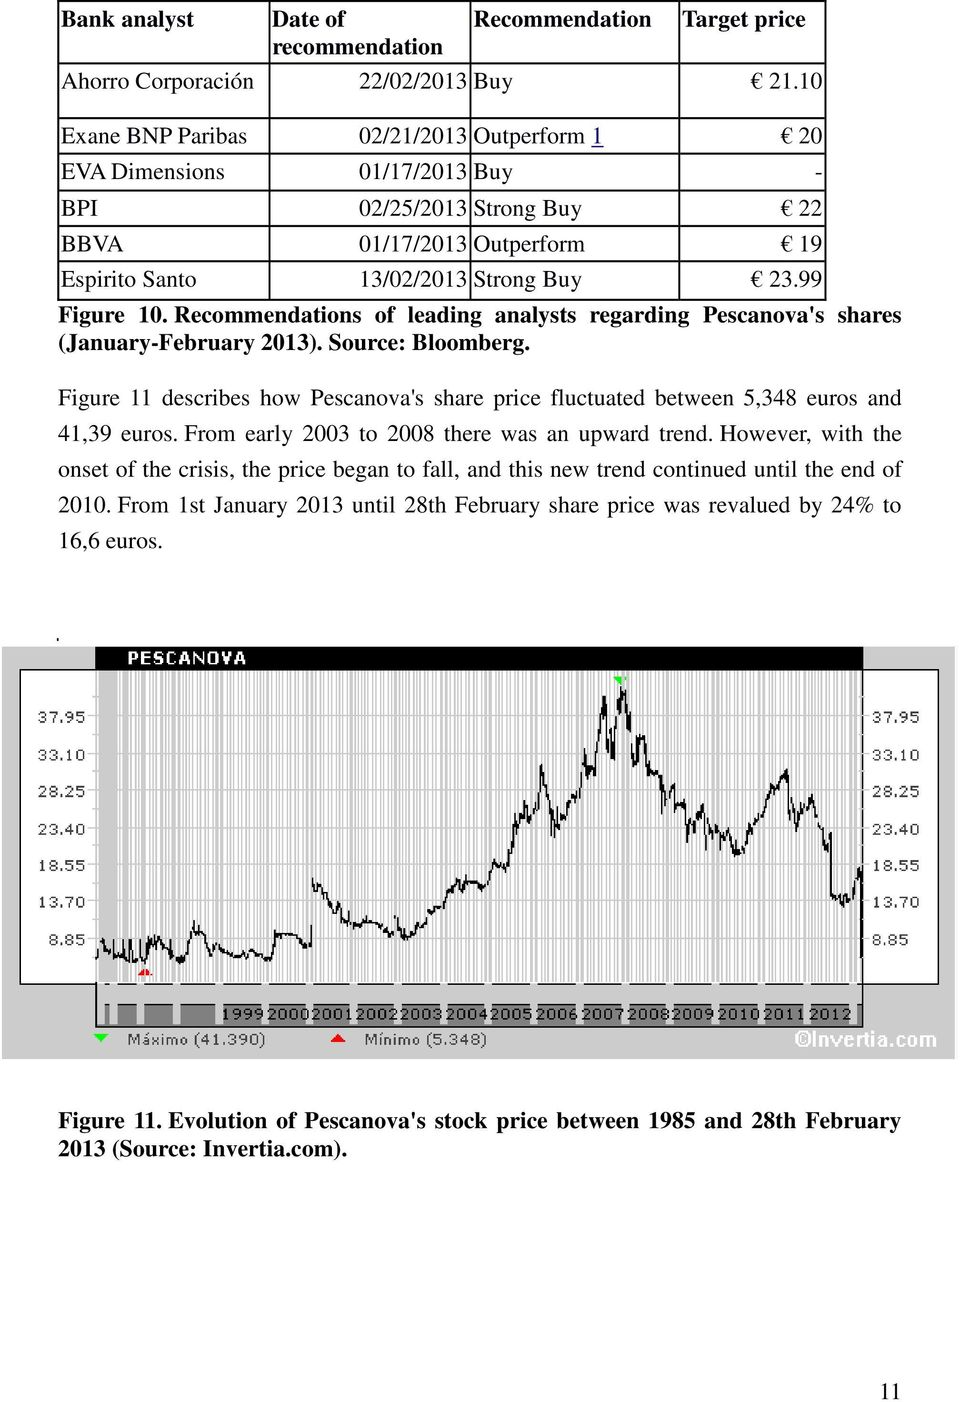 Recommendations of leading analysts regarding Pescanova's shares (January-February 2013). Source: Bloomberg.